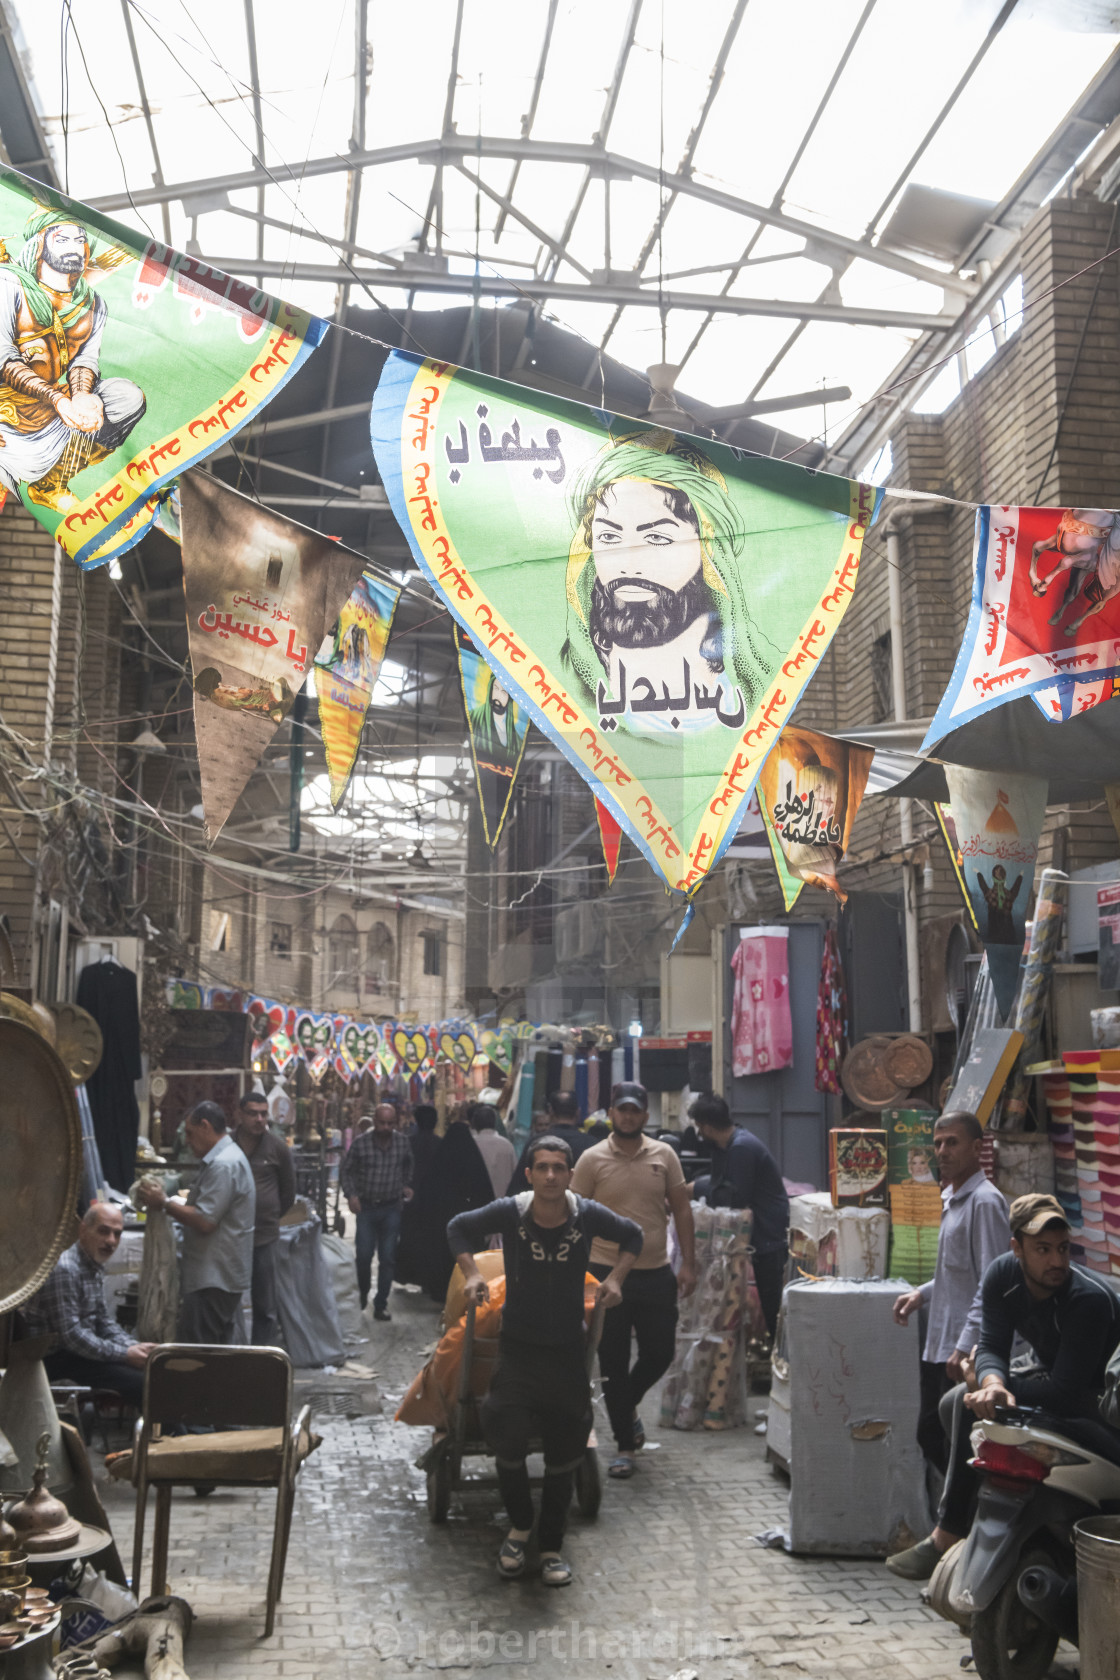 Martyrs flags in the Copper bazar, Baghdad, Iraq - License